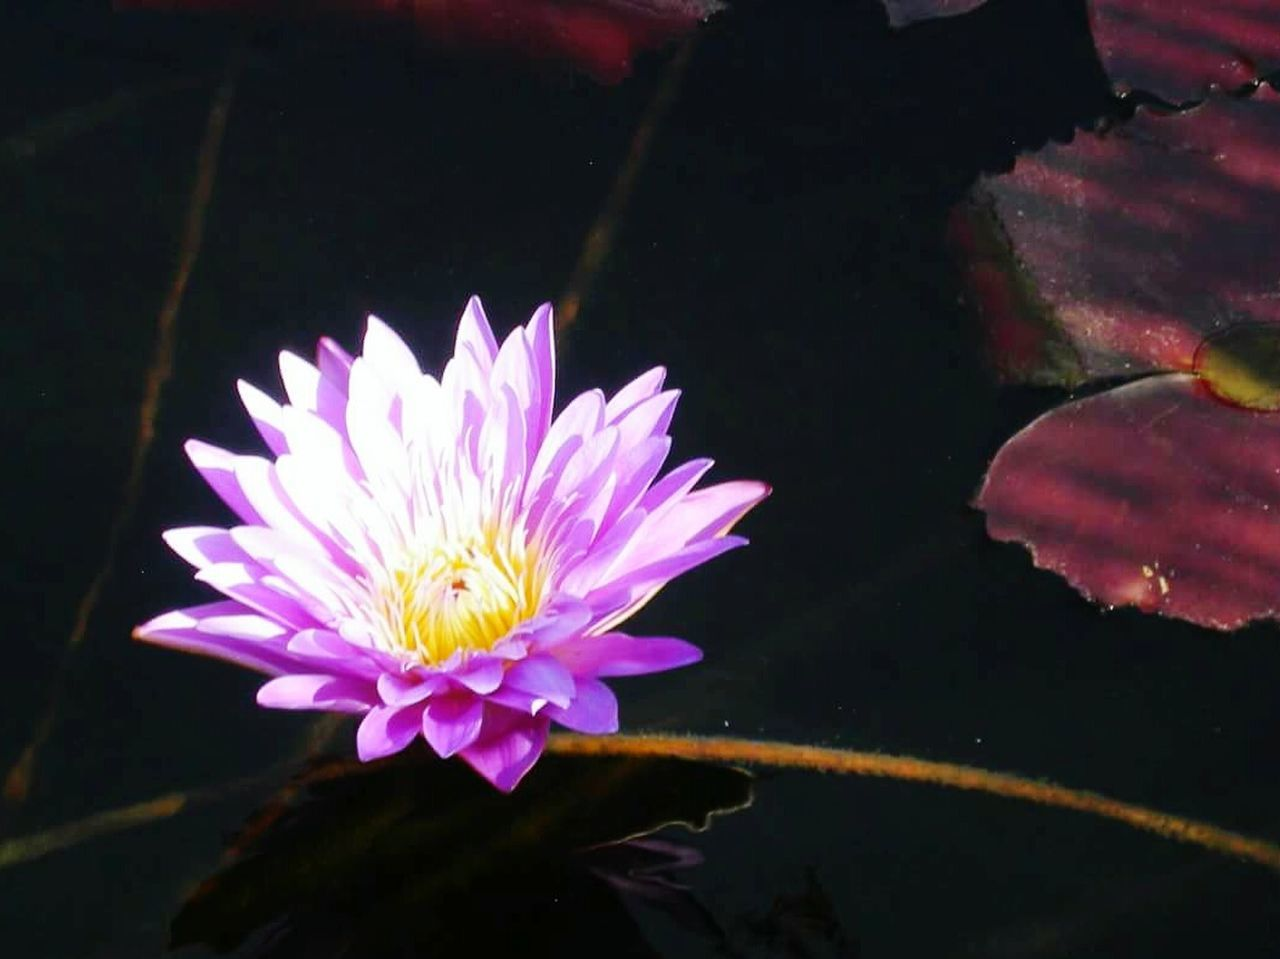 flower, petal, beauty in nature, nature, fragility, freshness, flower head, growth, plant, no people, blooming, outdoors, close-up, floating on water, leaf, water lily, water, yellow, day